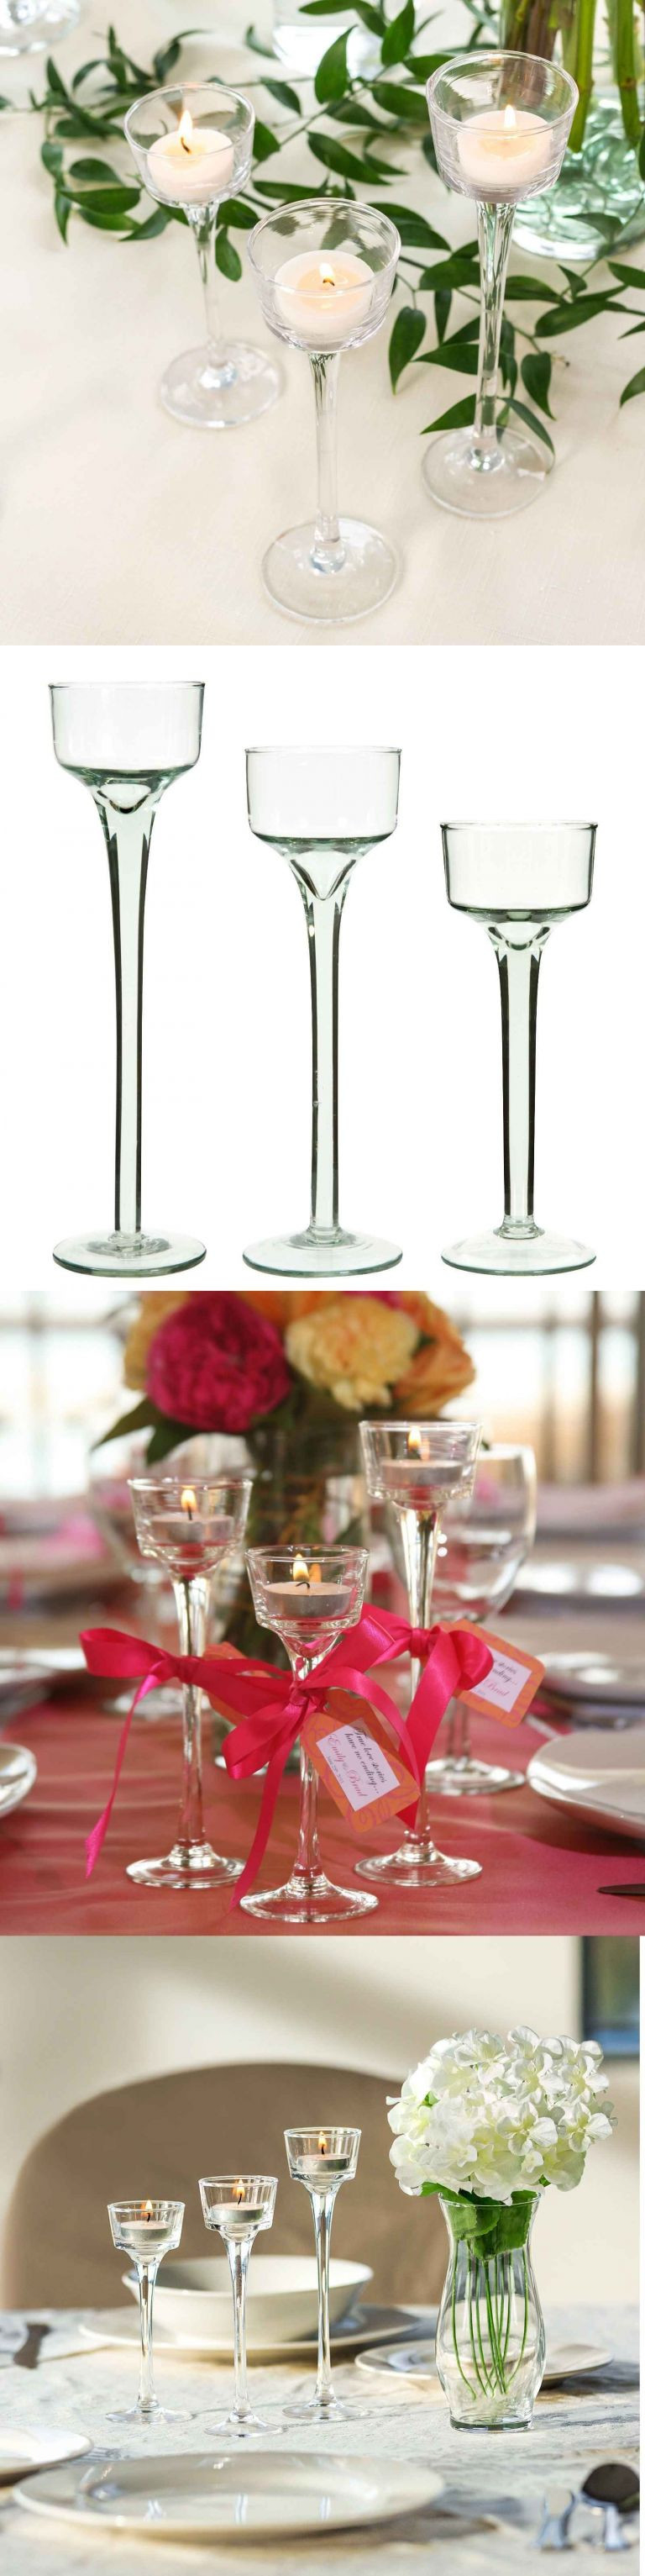 candles in vases for weddings of gold mercury glass vases fresh faux crystal candle holders alive pertaining to gold mercury glass vases fresh faux crystal candle holders alive vases gold tall jpgi 0d cheap in